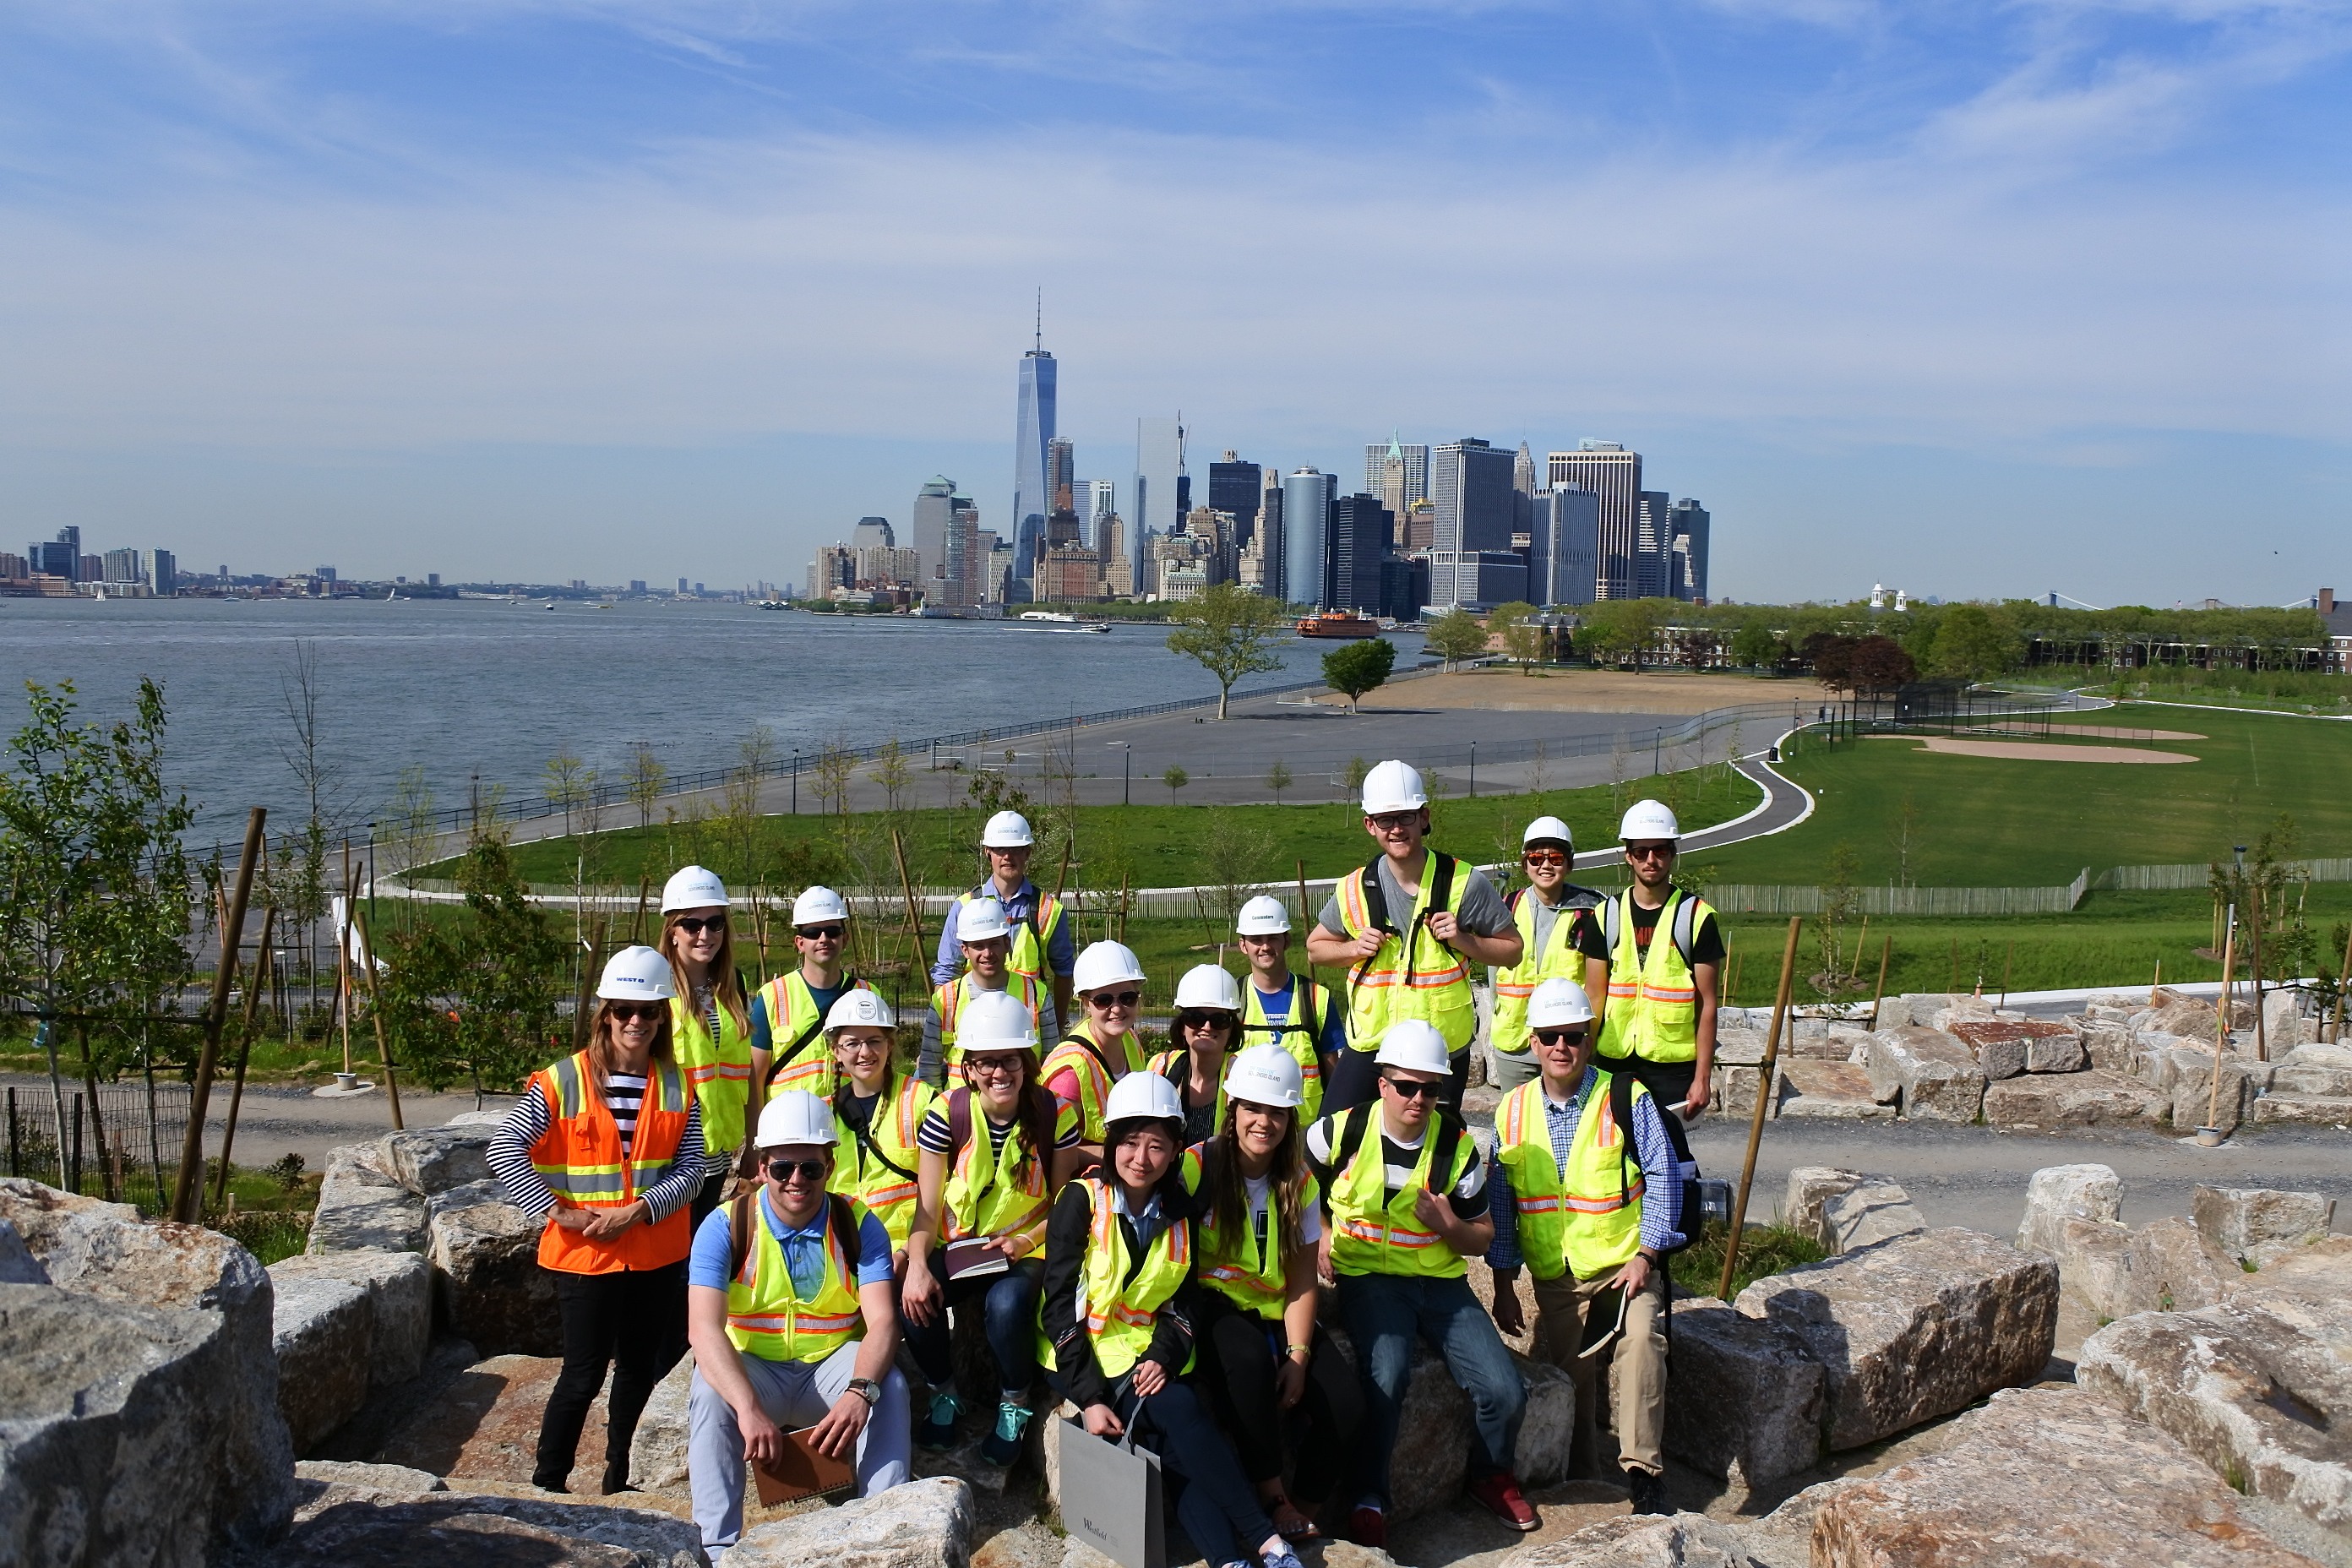 USU LANDSCAPE ARCHITECTURE STUDENTS EXPAND HORIZONS IN NEW YORK CITY